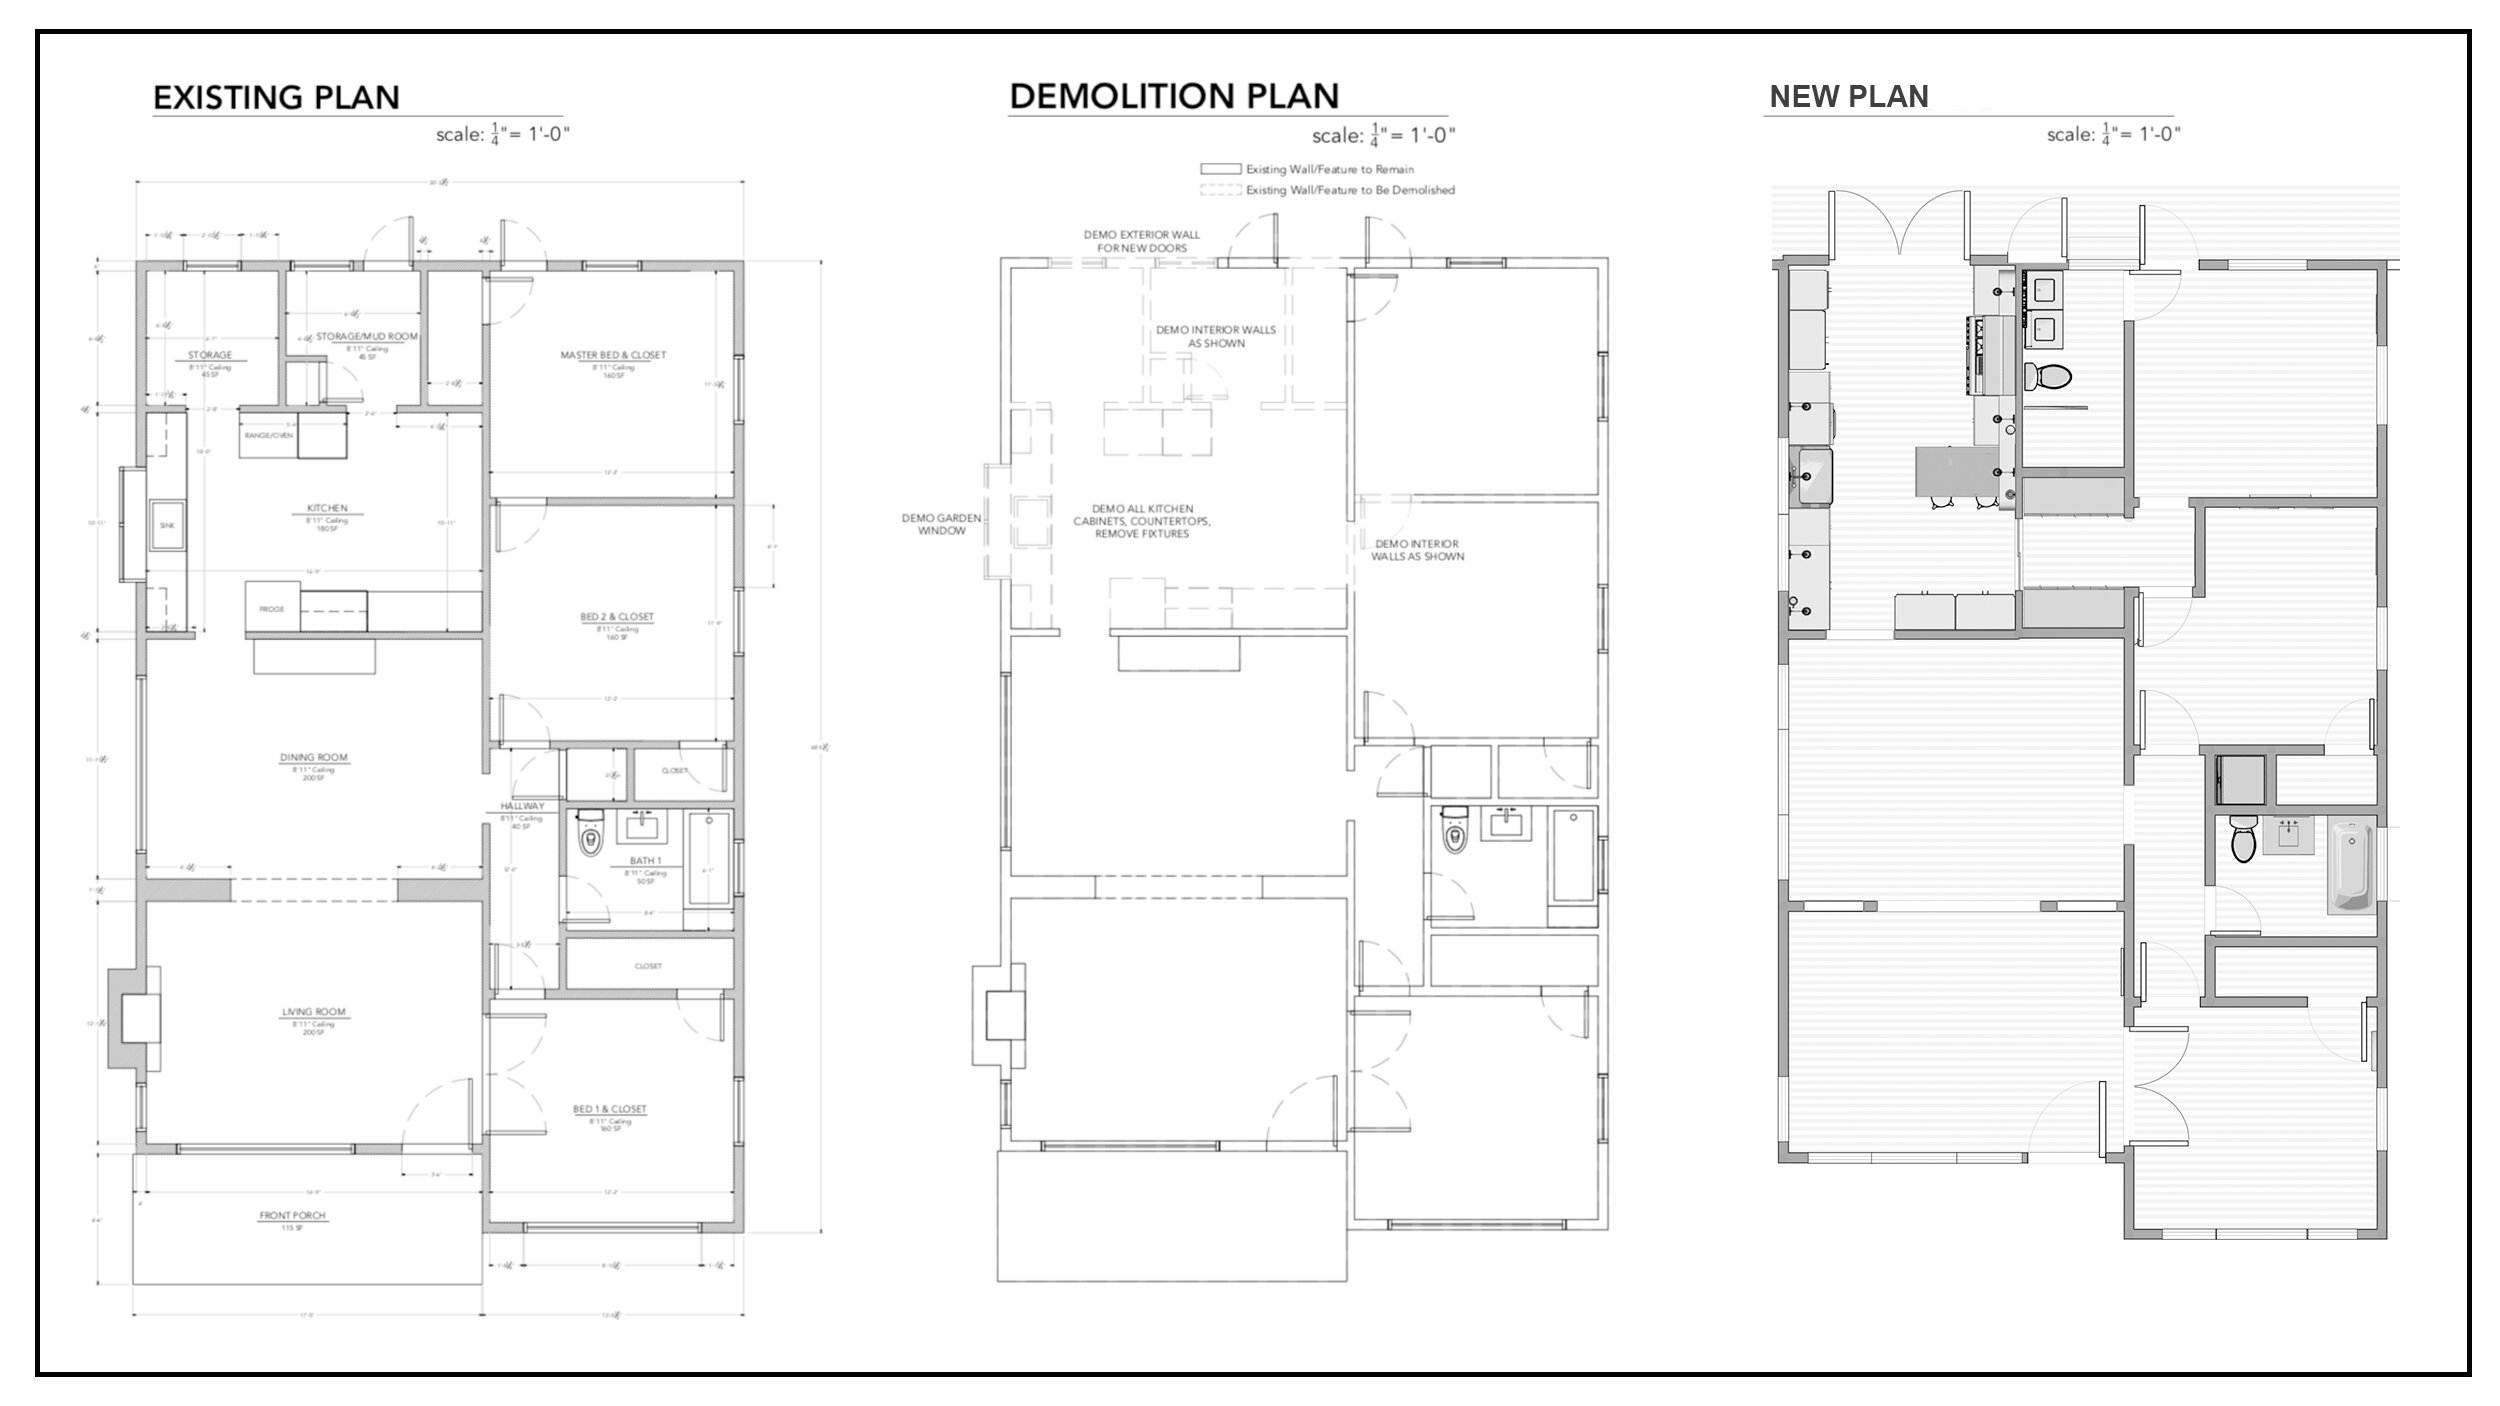 Getting You Up To Speed On The Kitchen And Bathroom Remodel Plans